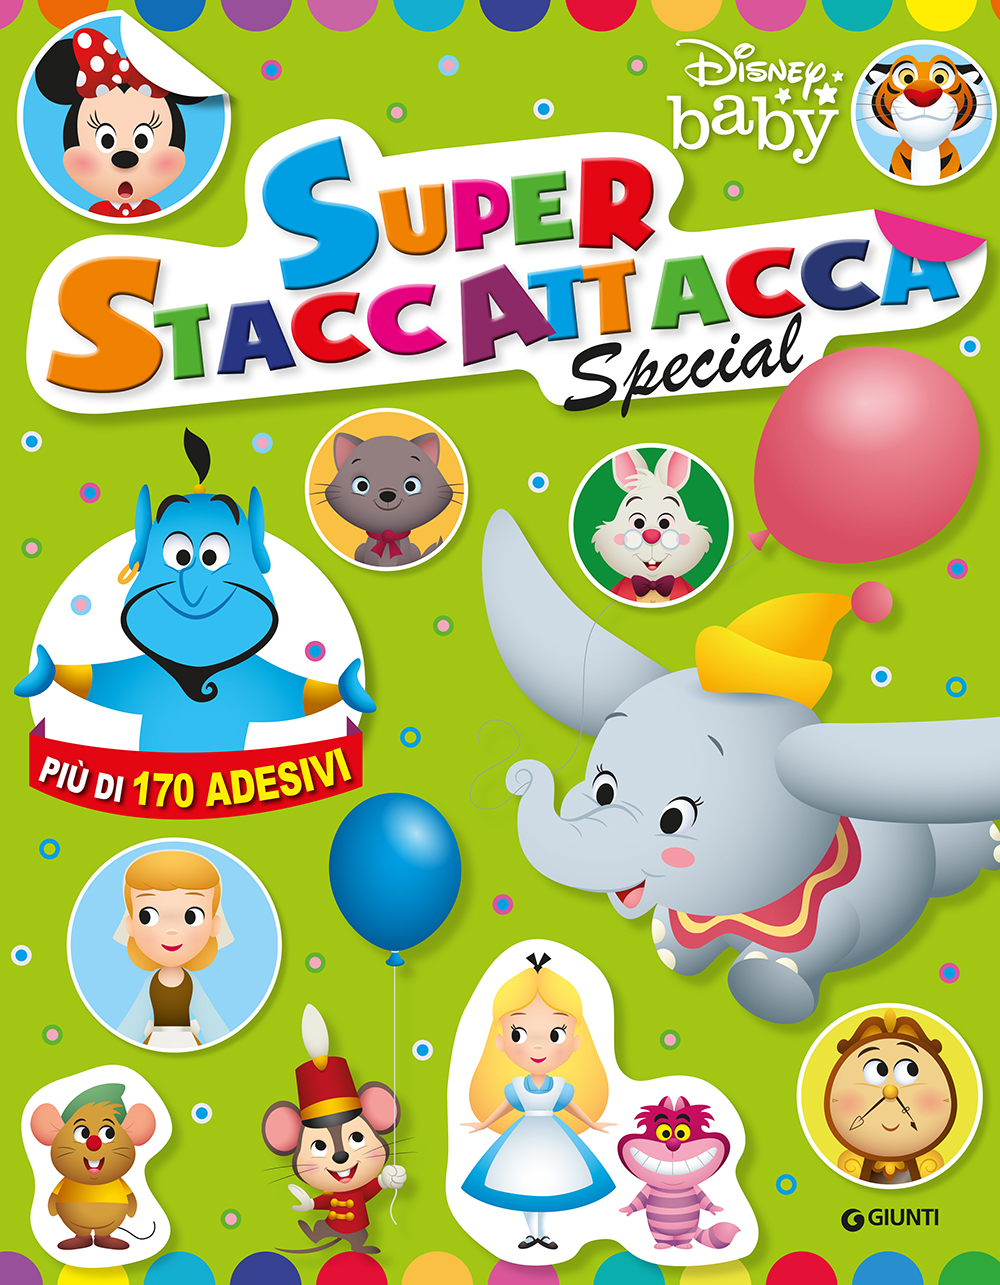 SUPERSTACCATTACCA SPECIAL DISNEY BABY